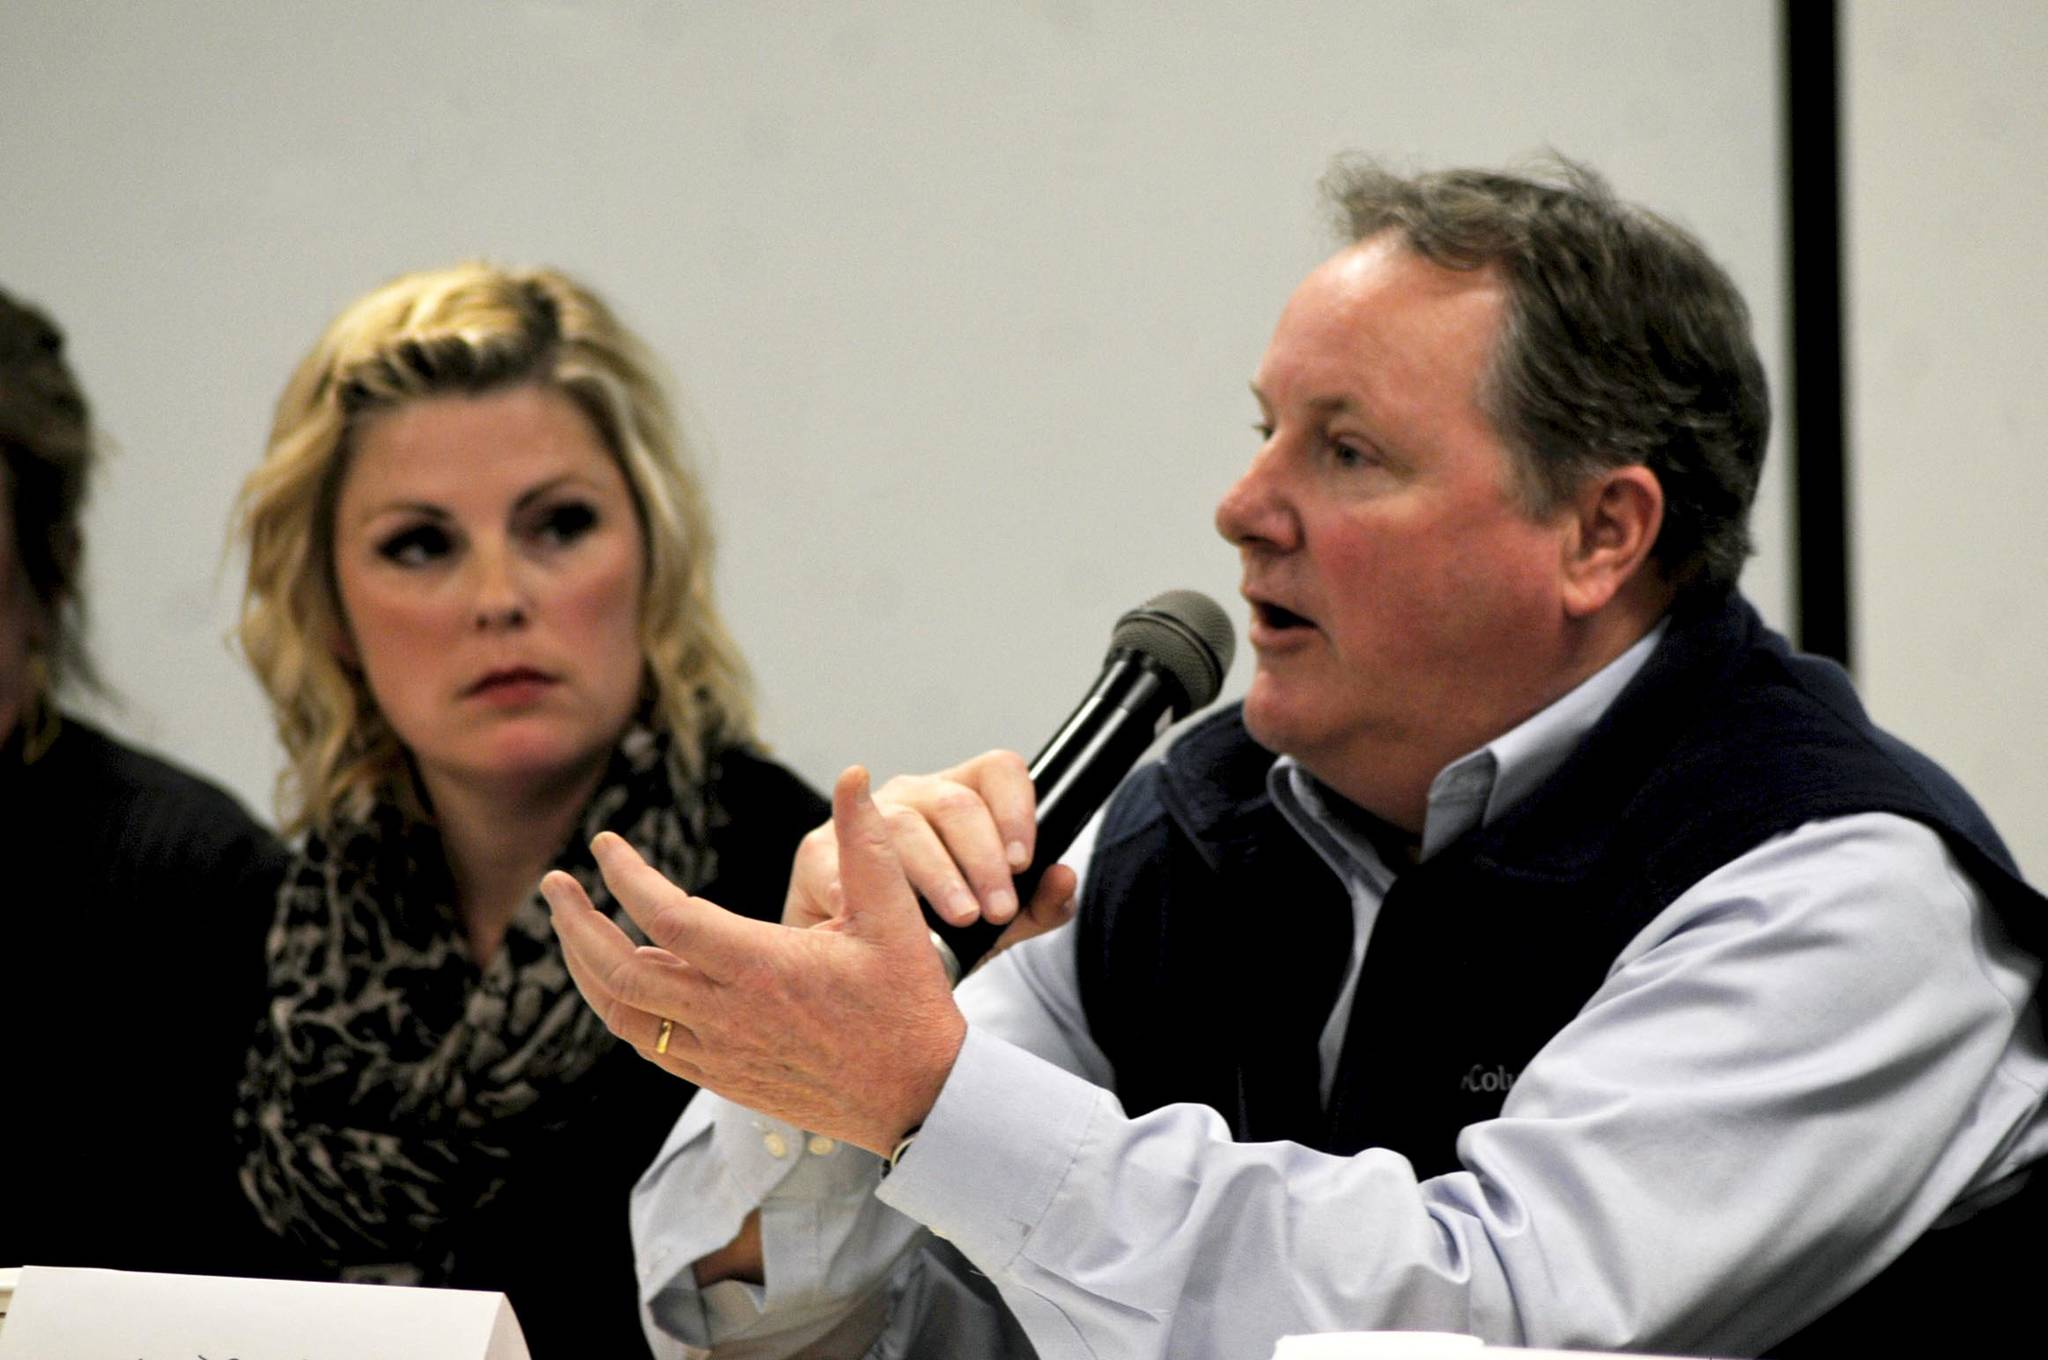 Jim Butler, a Kenai attorney and Cook Inlet commercial setnet fisherman, addresses a question during a forum on salmon habitat policy at Cook Inlet Aquaculture Association's headquarters Thursday, Dec. 14, 2017 in Kenai, Alaska. A group of panelists discussed the merits of the current salmon habitat permitting process, contained within Title 16 of the Alaska Administrative Code, and a proposed ballot initiative that would significantly tighten restrictions on permitting for projects that impact salmon streams. (Photo by Elizabeth Earl/Peninsula Clarion)